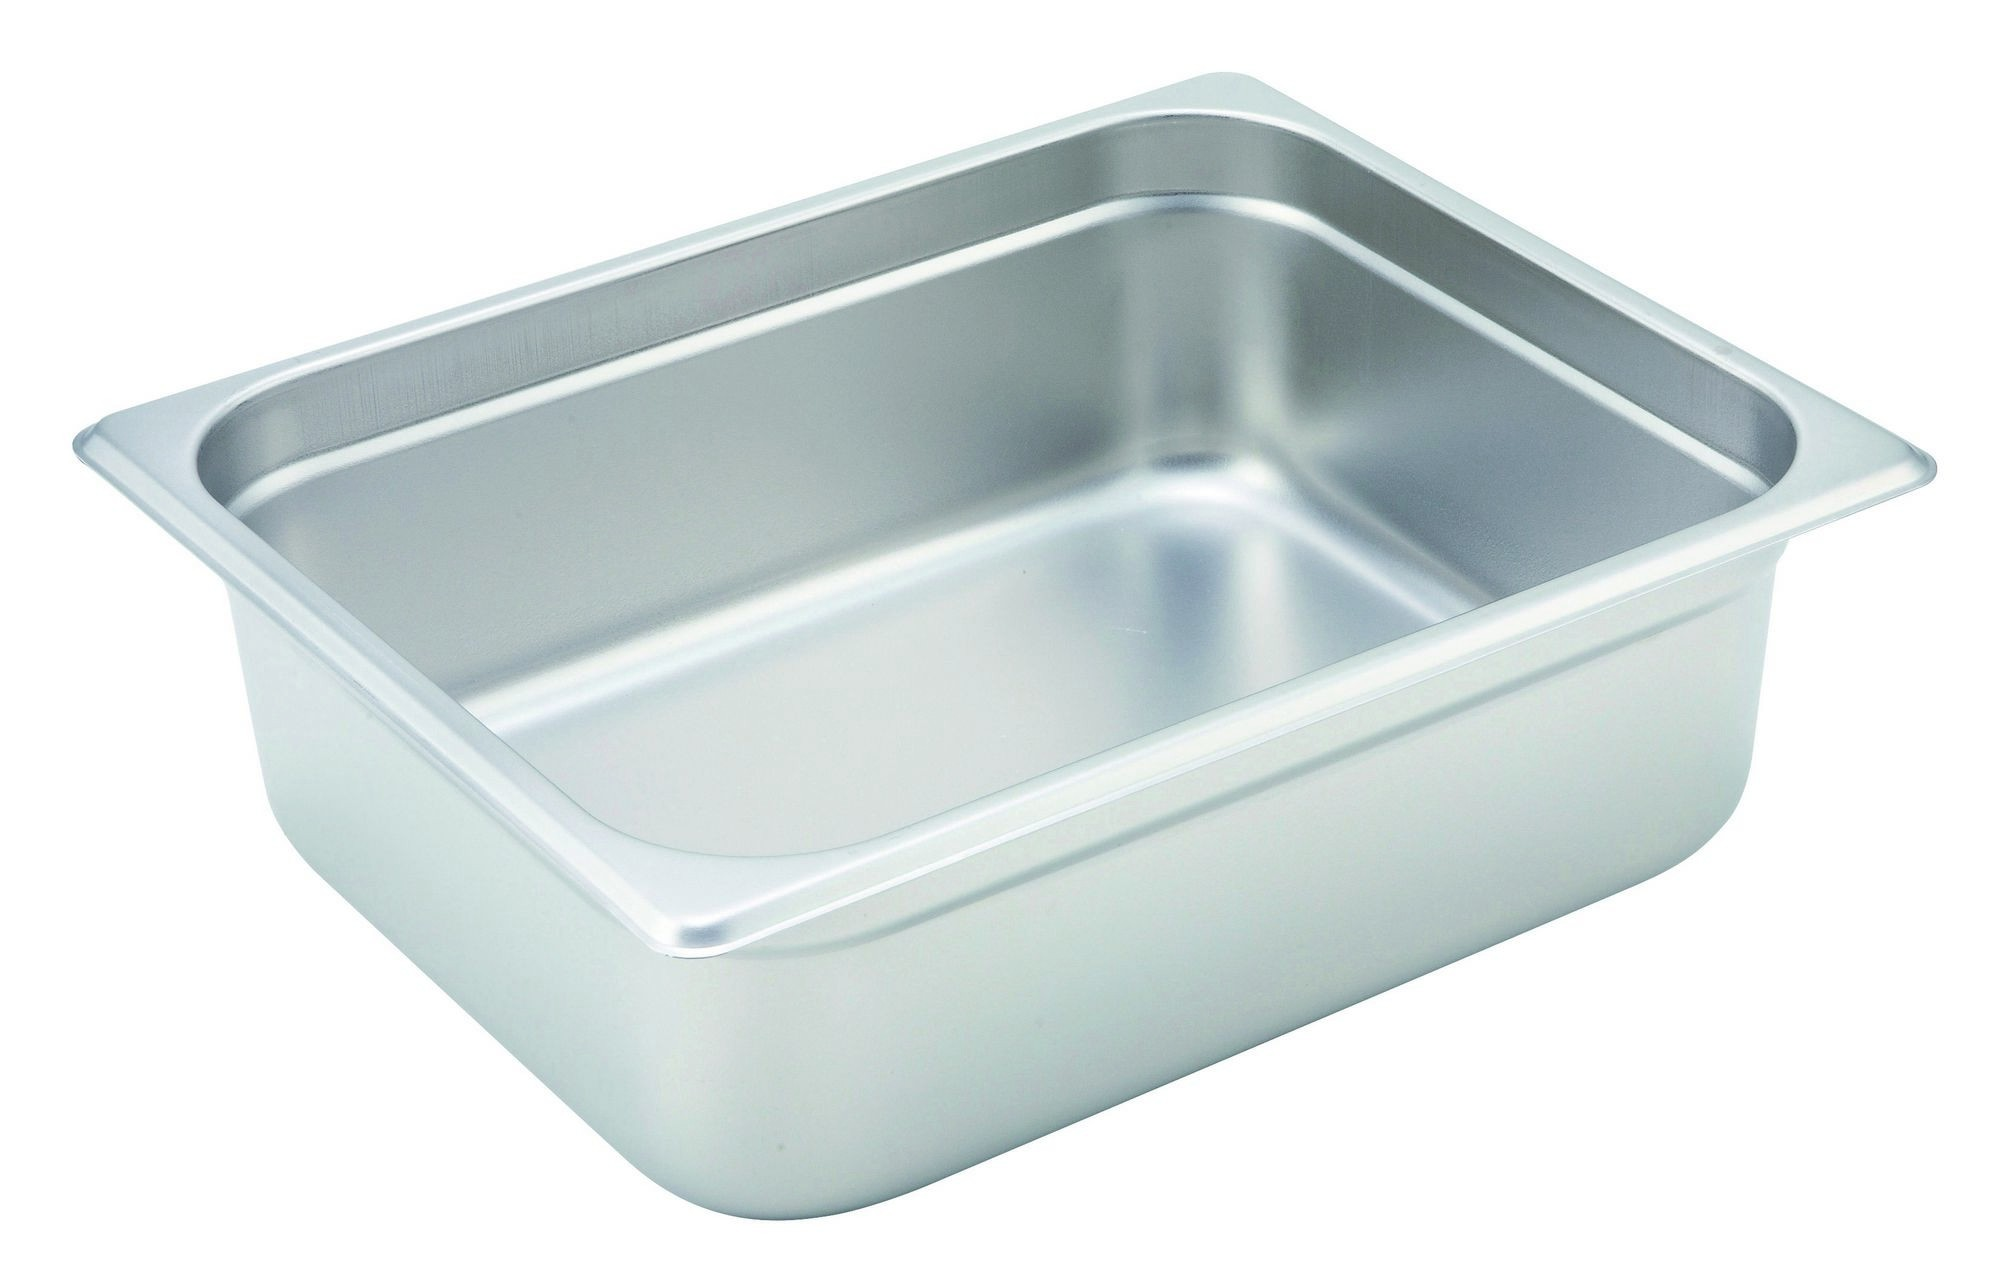 "Winco Spjh-204 1/2 Size Anti-Jam 22 Gauge Steam Table Pan 4"" Deep"